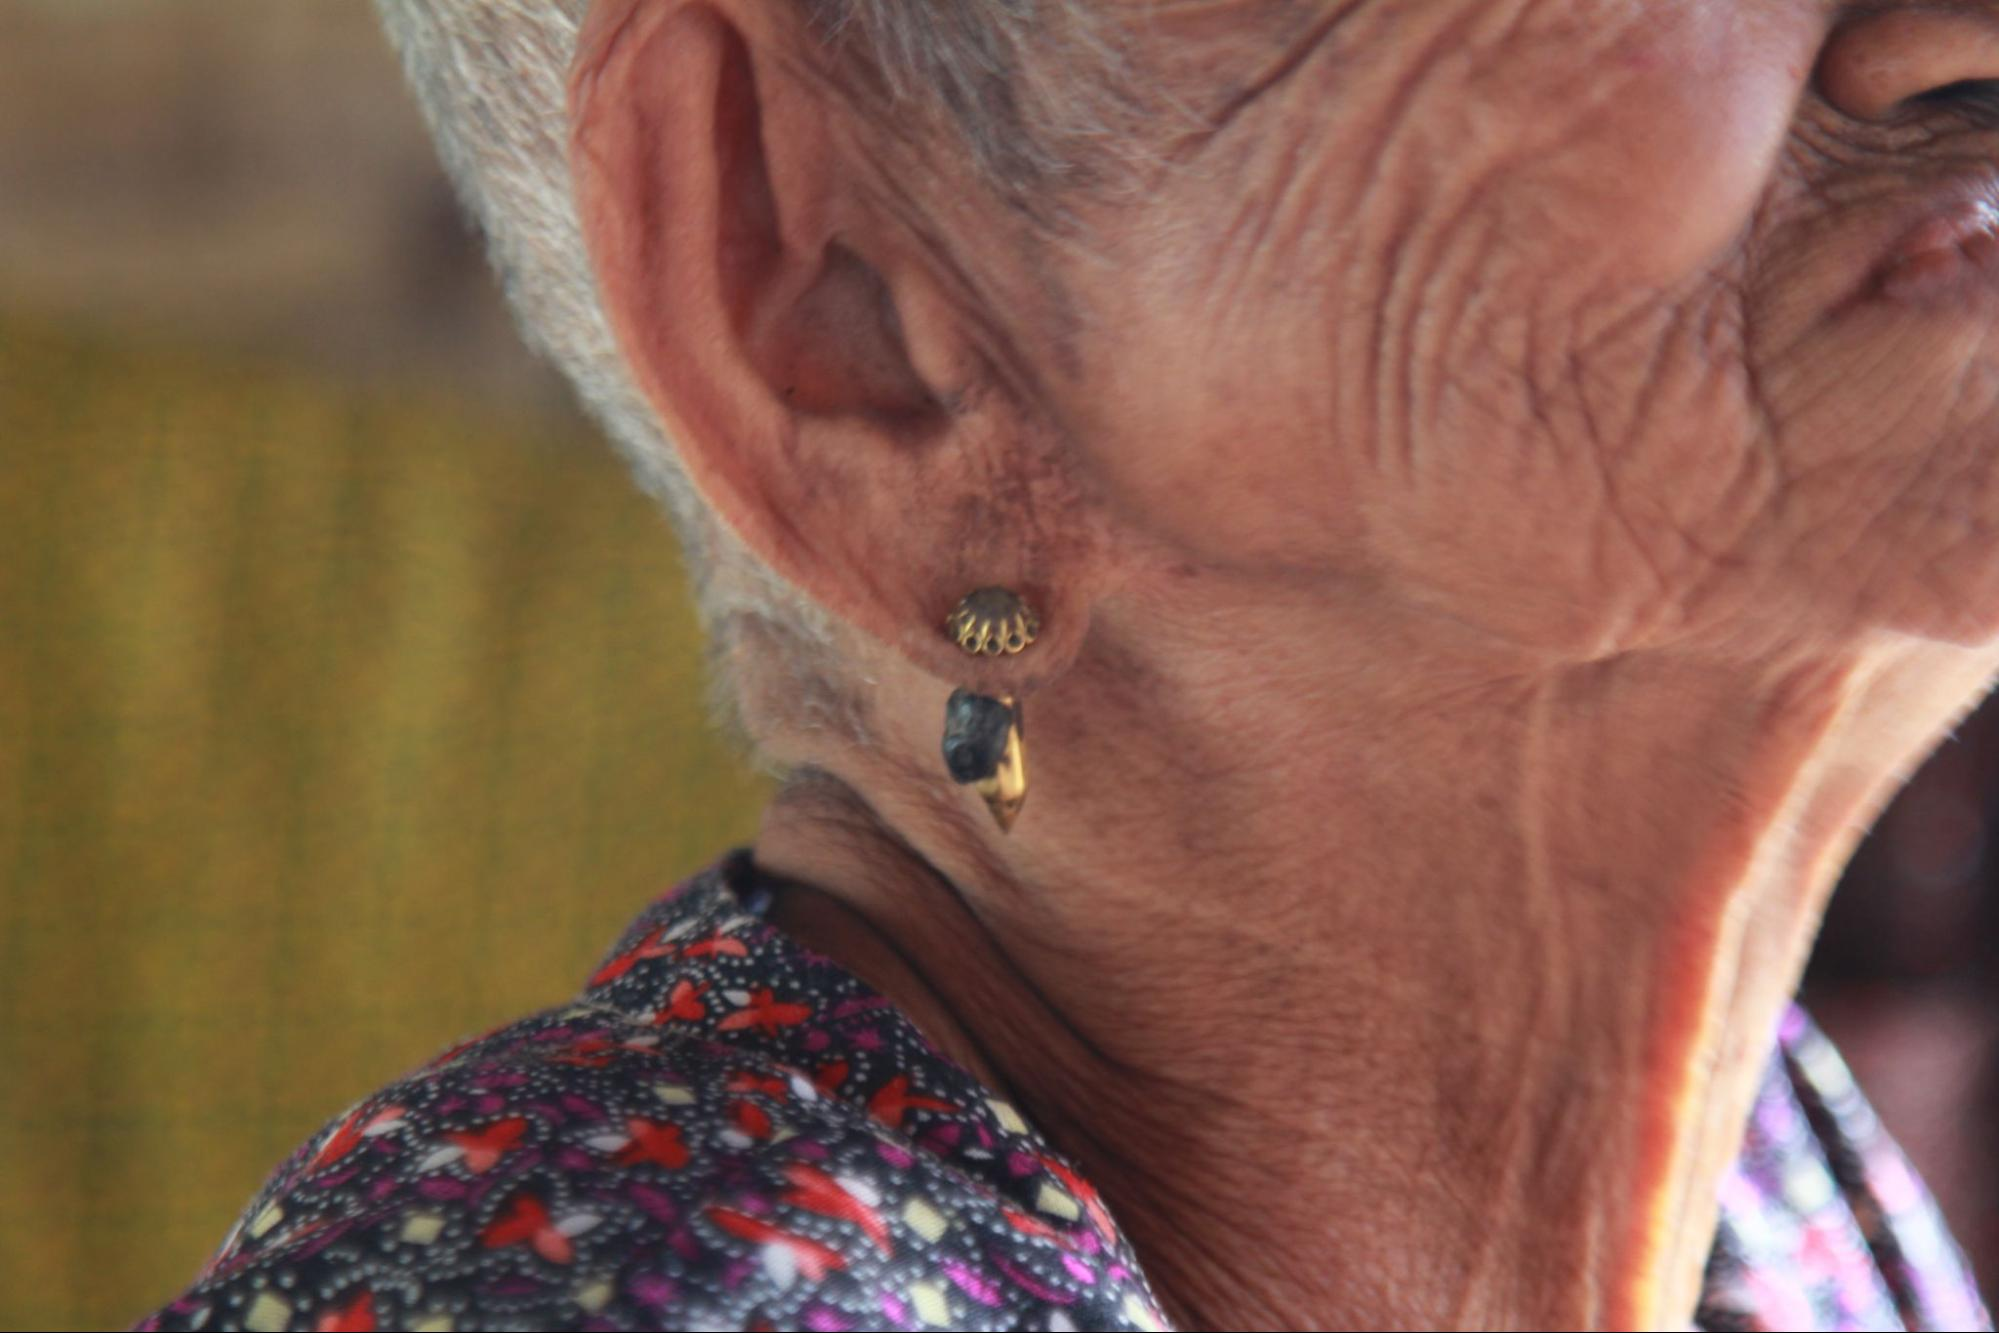 10 reasons to stop putting off your hearing health and invest in hearing aids